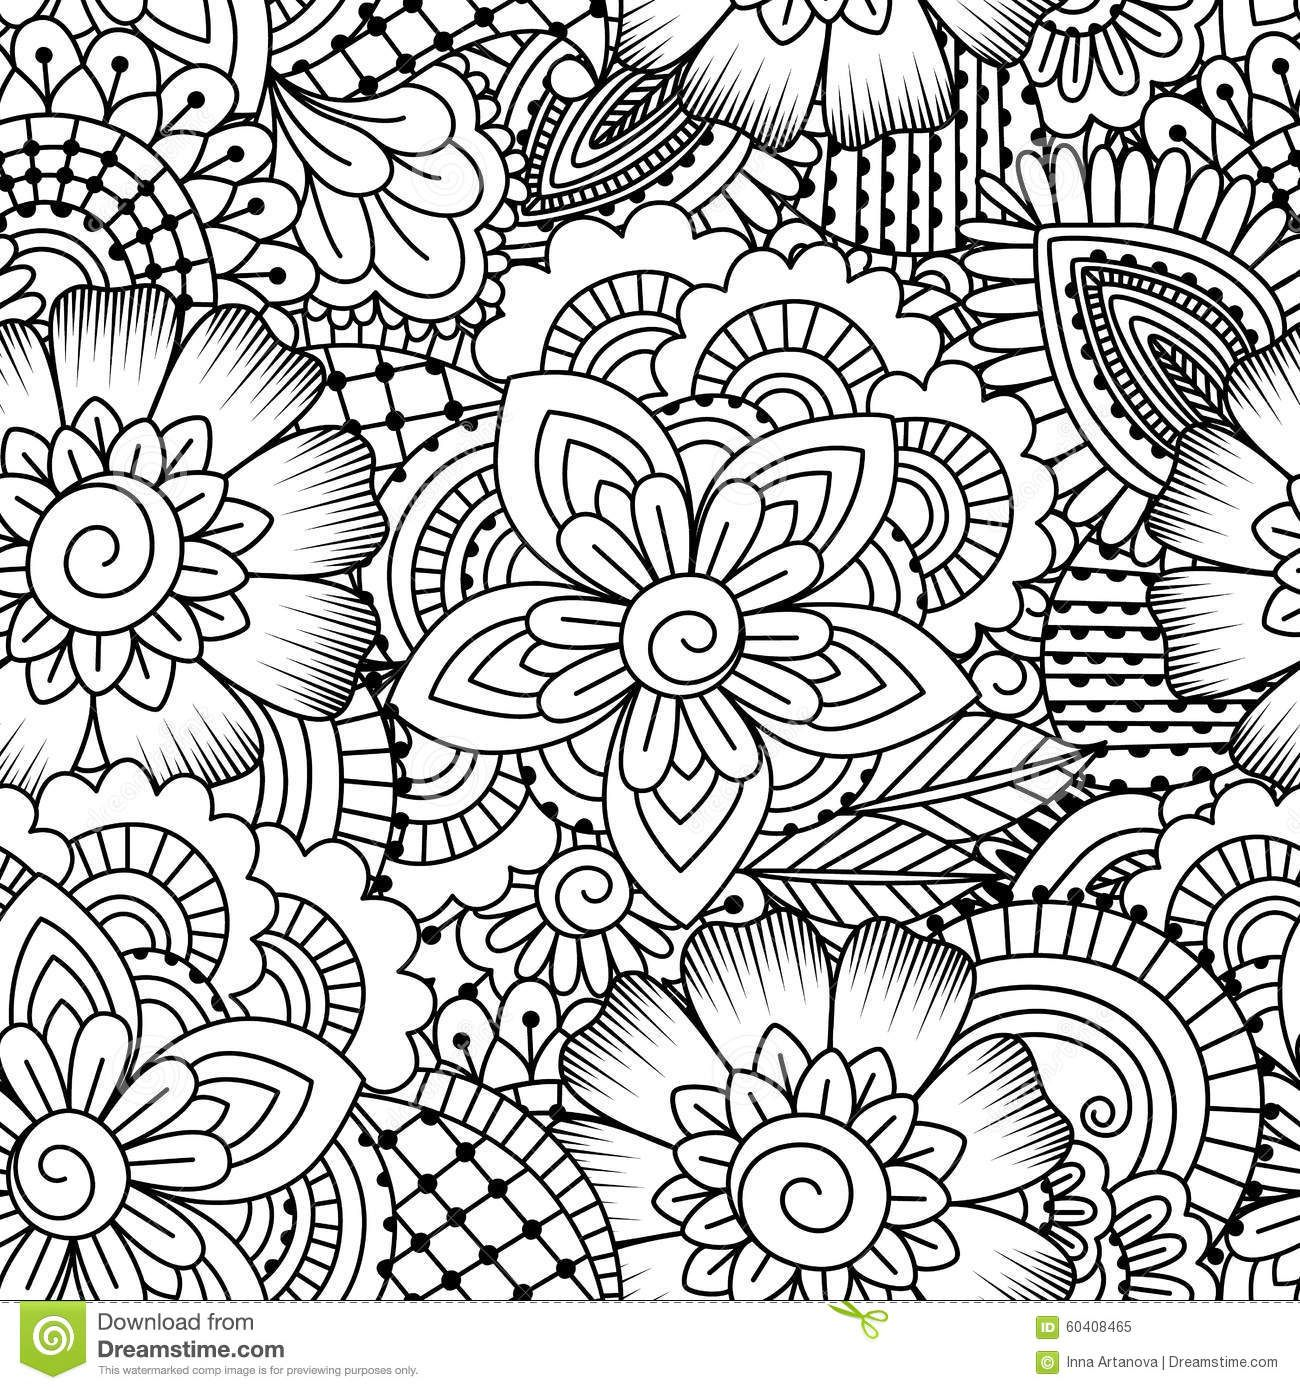 black and white coloring pages for adults pin by laura d rath on color pages moon coloring coloring white for adults black and pages